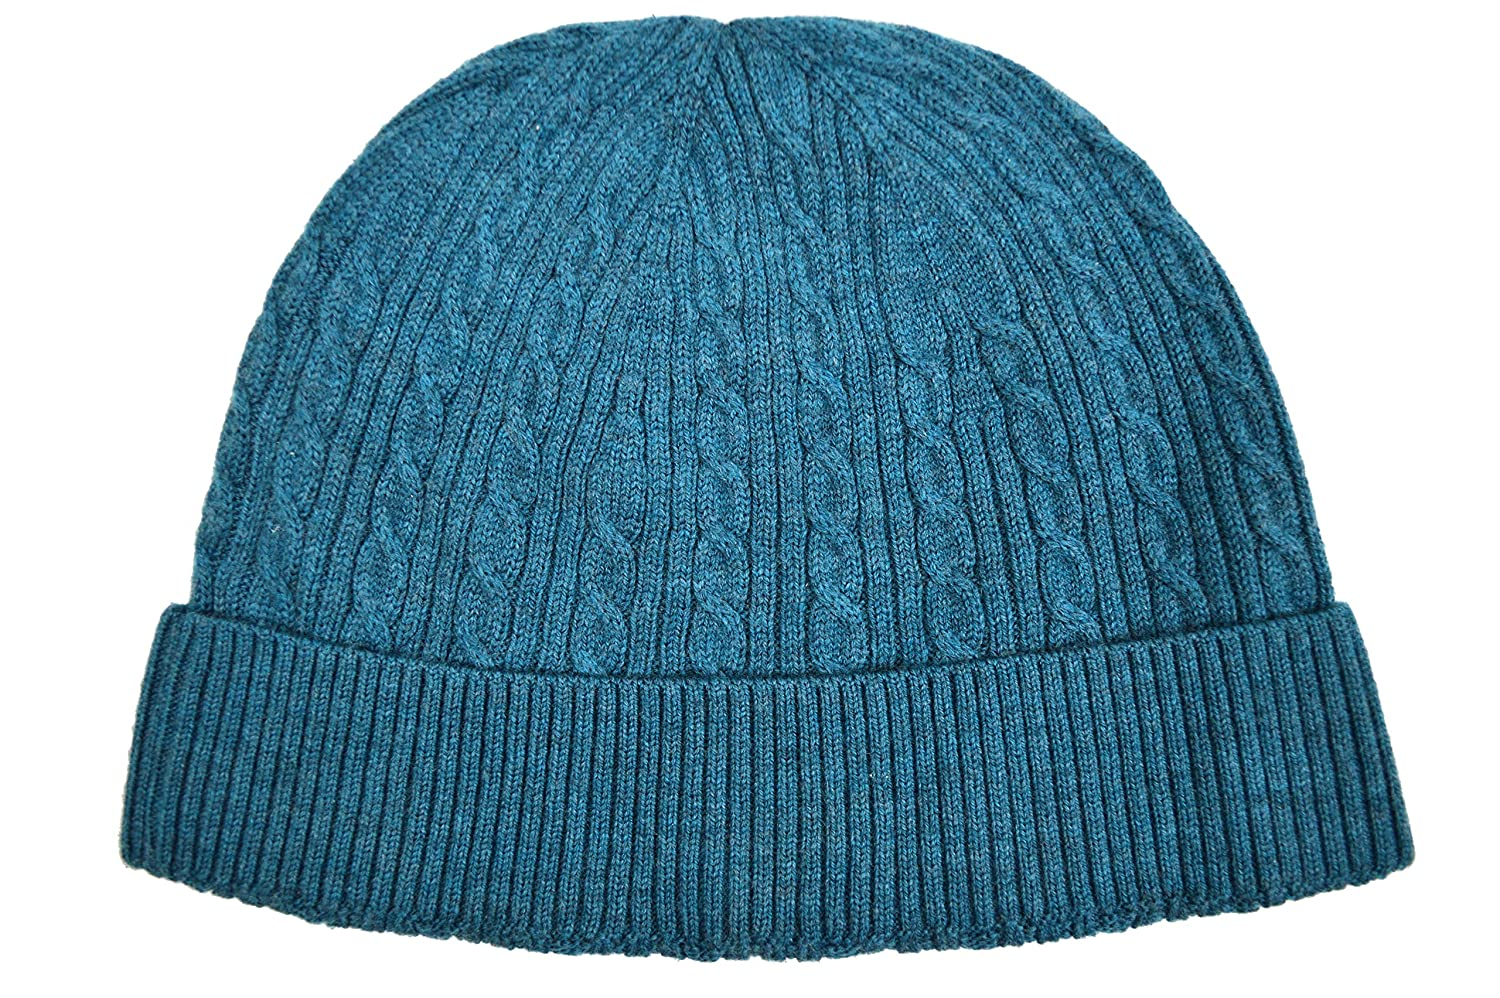 99fcce663 Brooks Brothers Men's Cable Knit Ribbed Merino Wool Beanie Winter ...